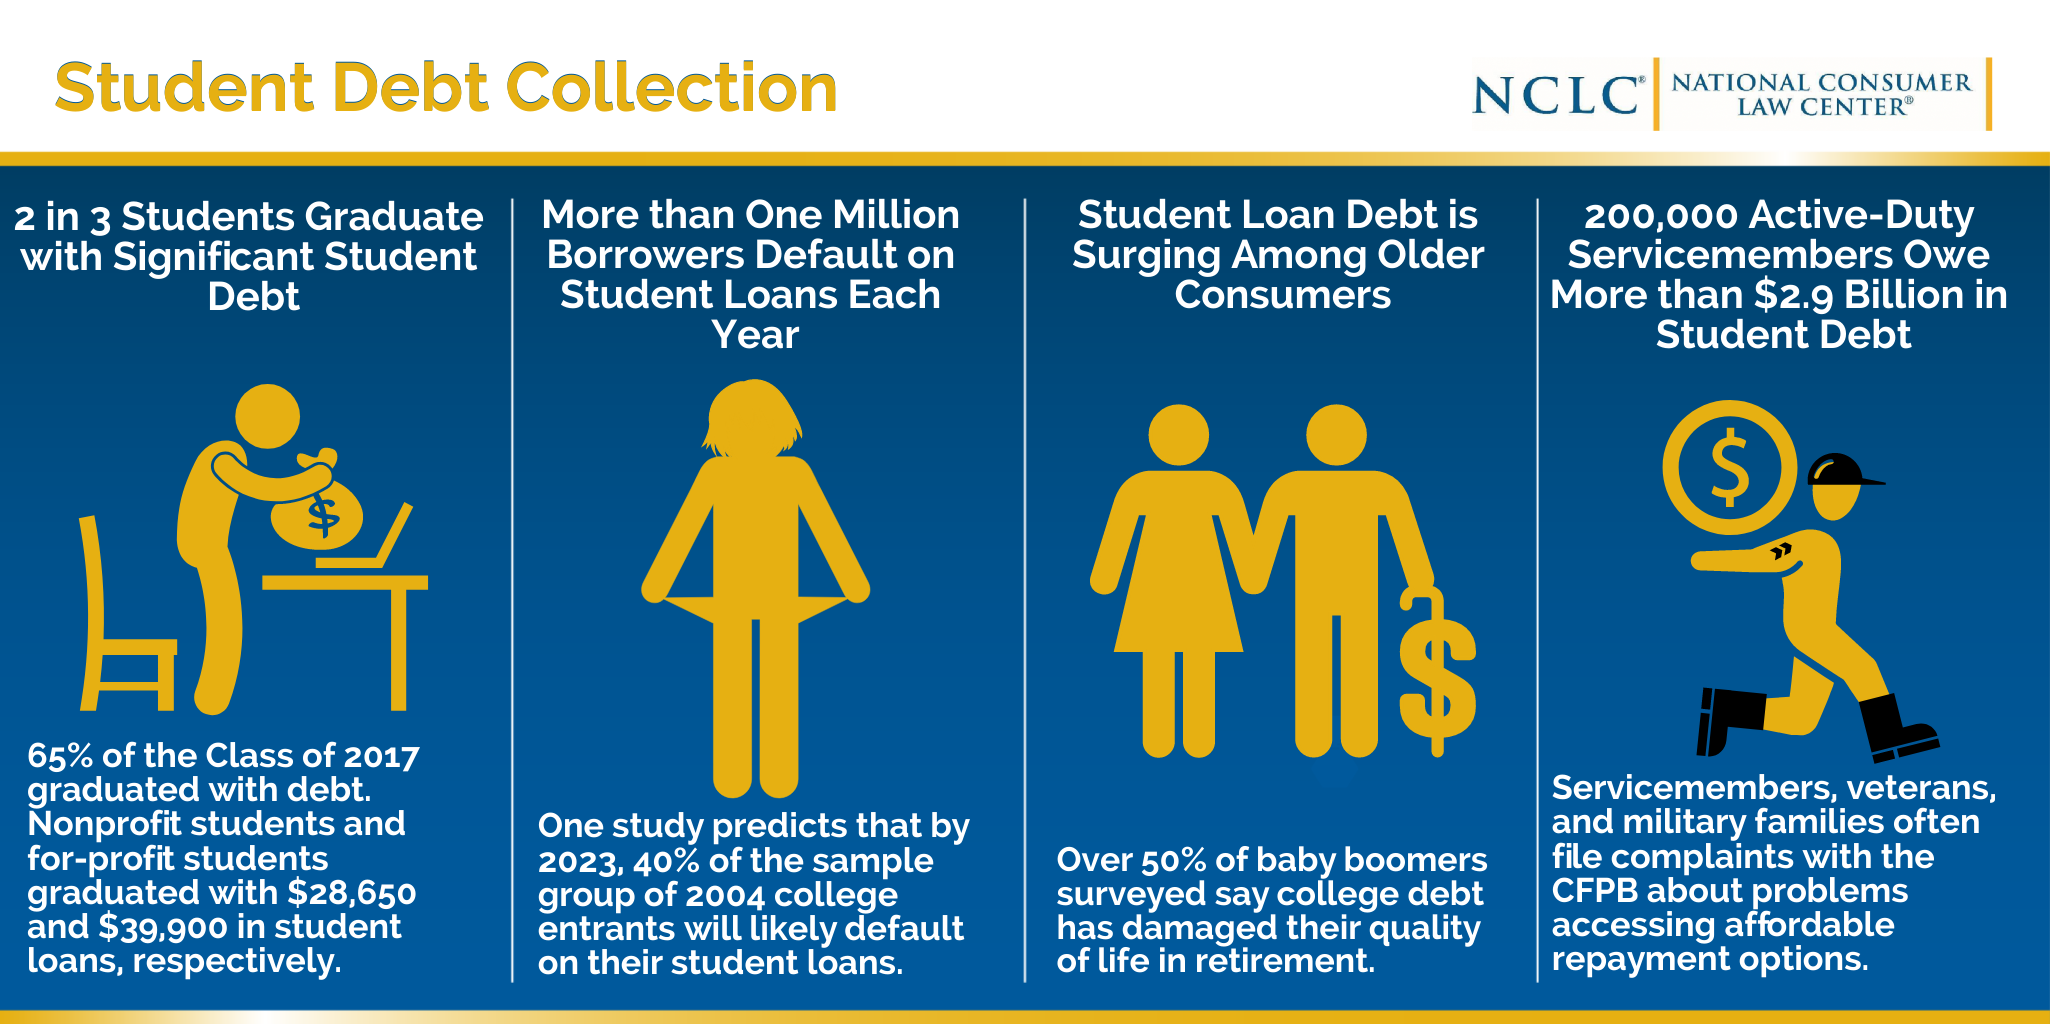 debt collection - students